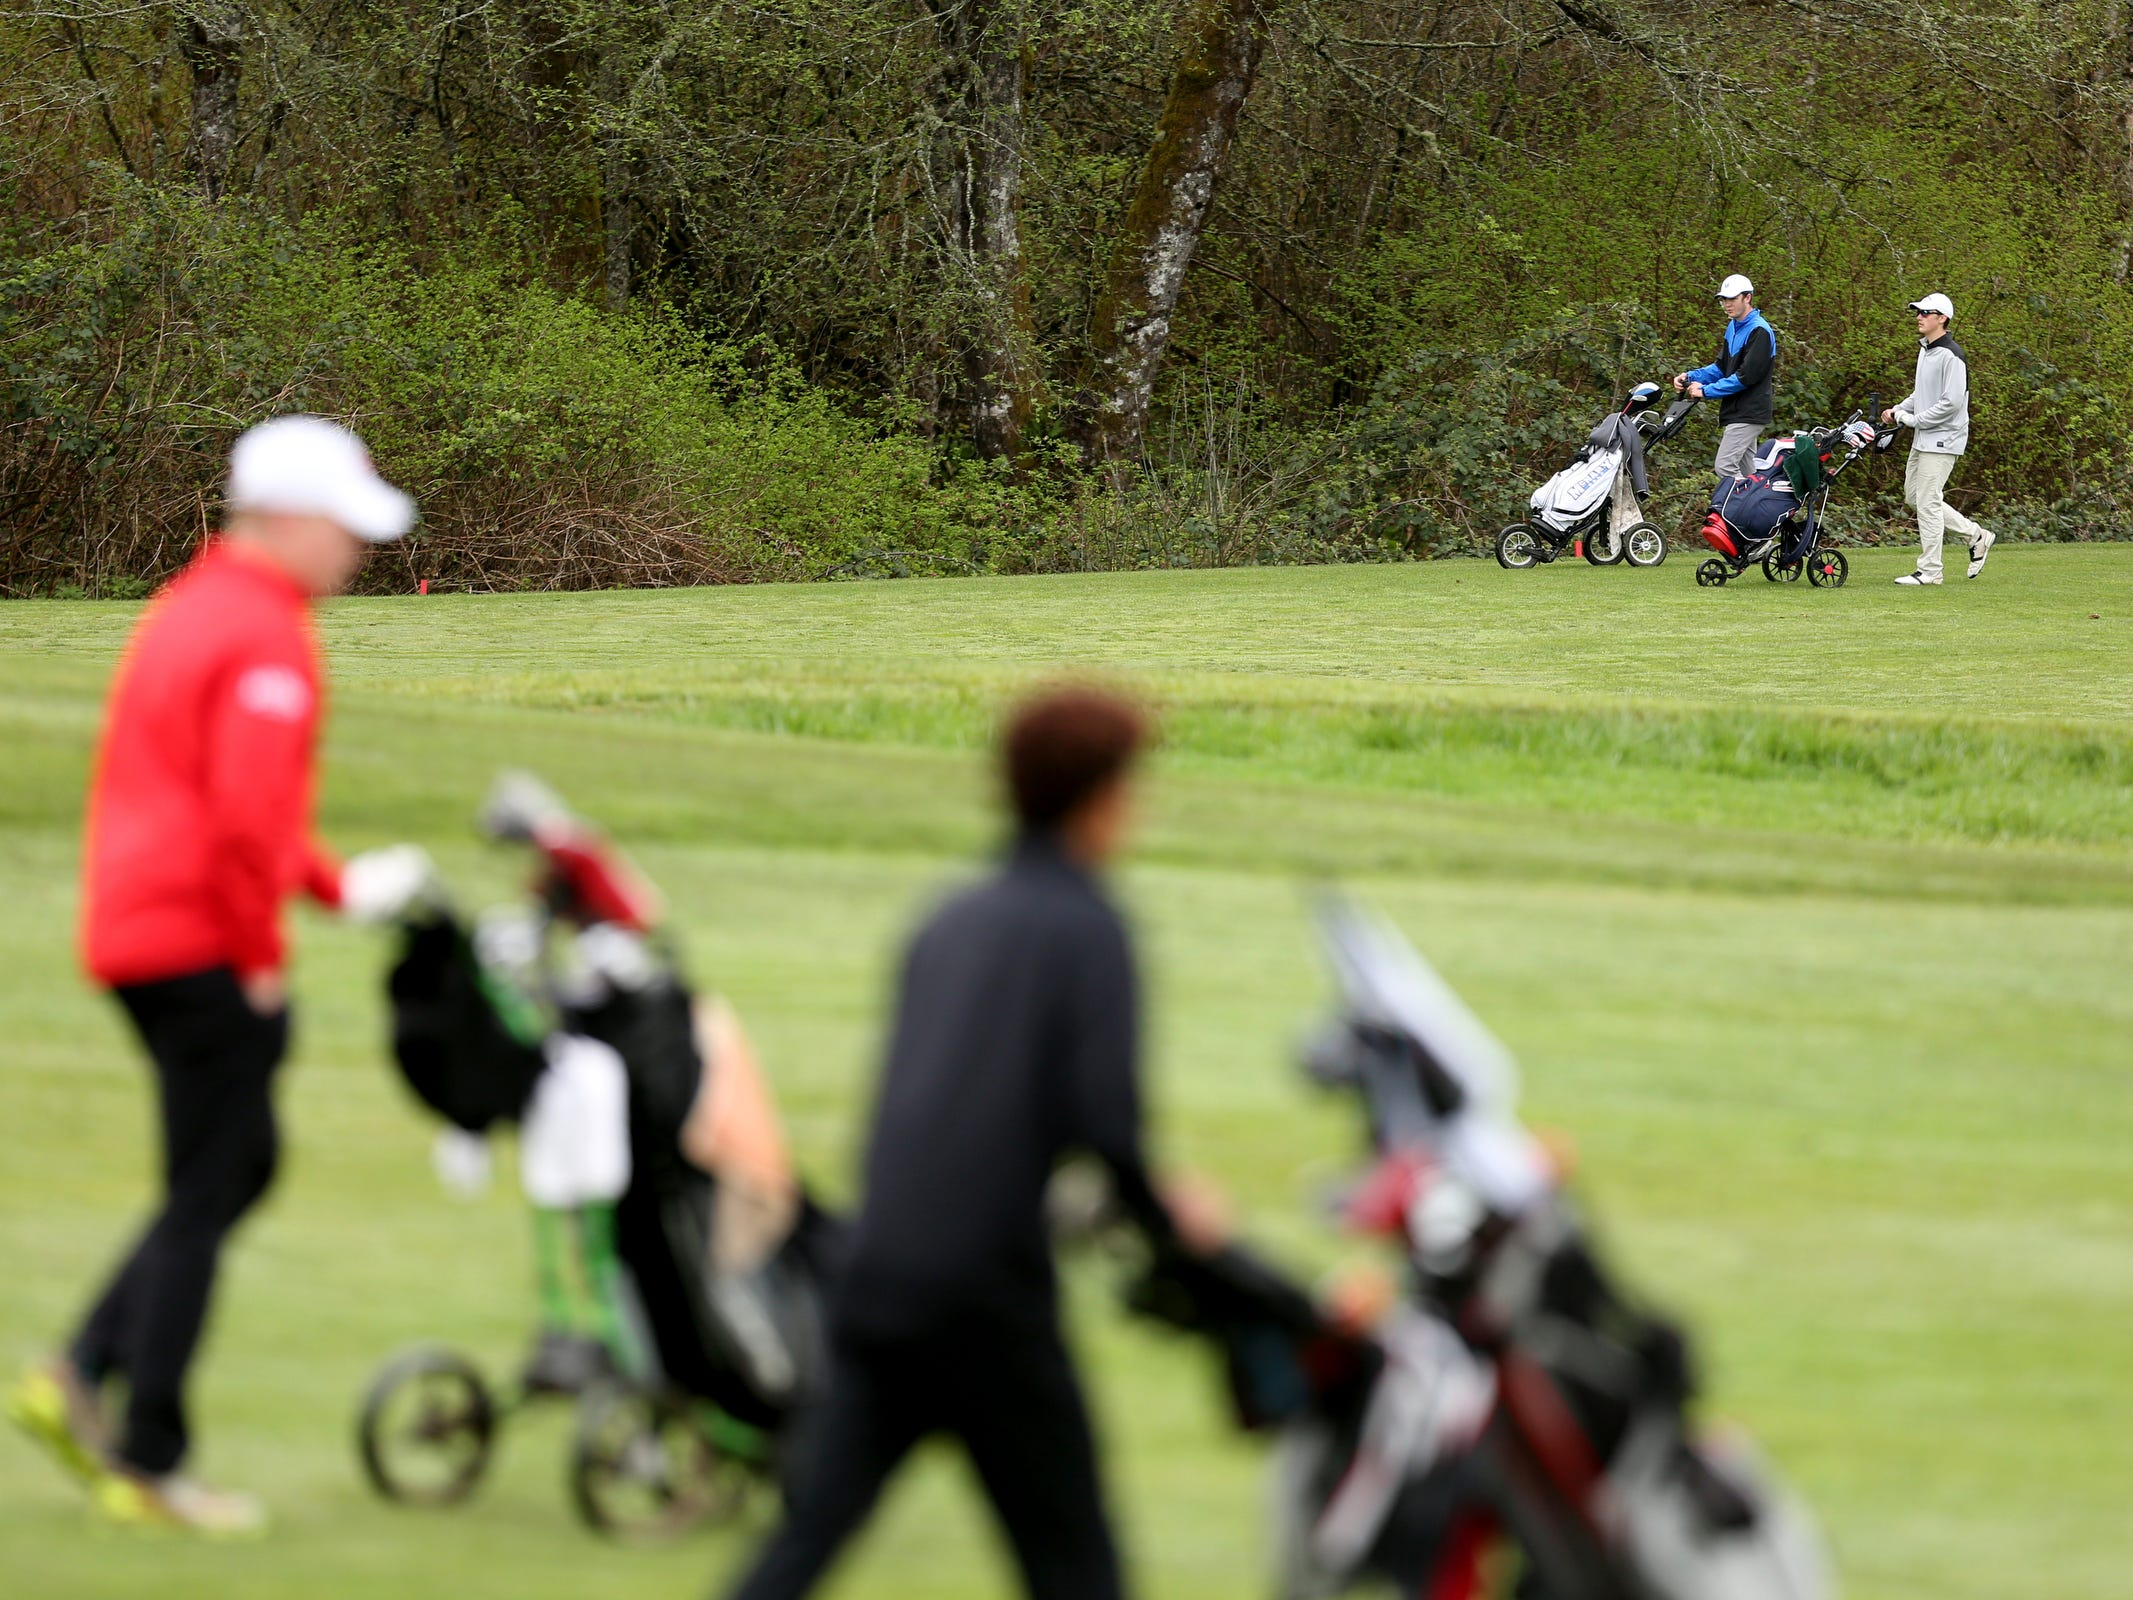 A Mountain Valley Conference league high school golf match at Creekside Golf Club in Salem on April 15, 2019.